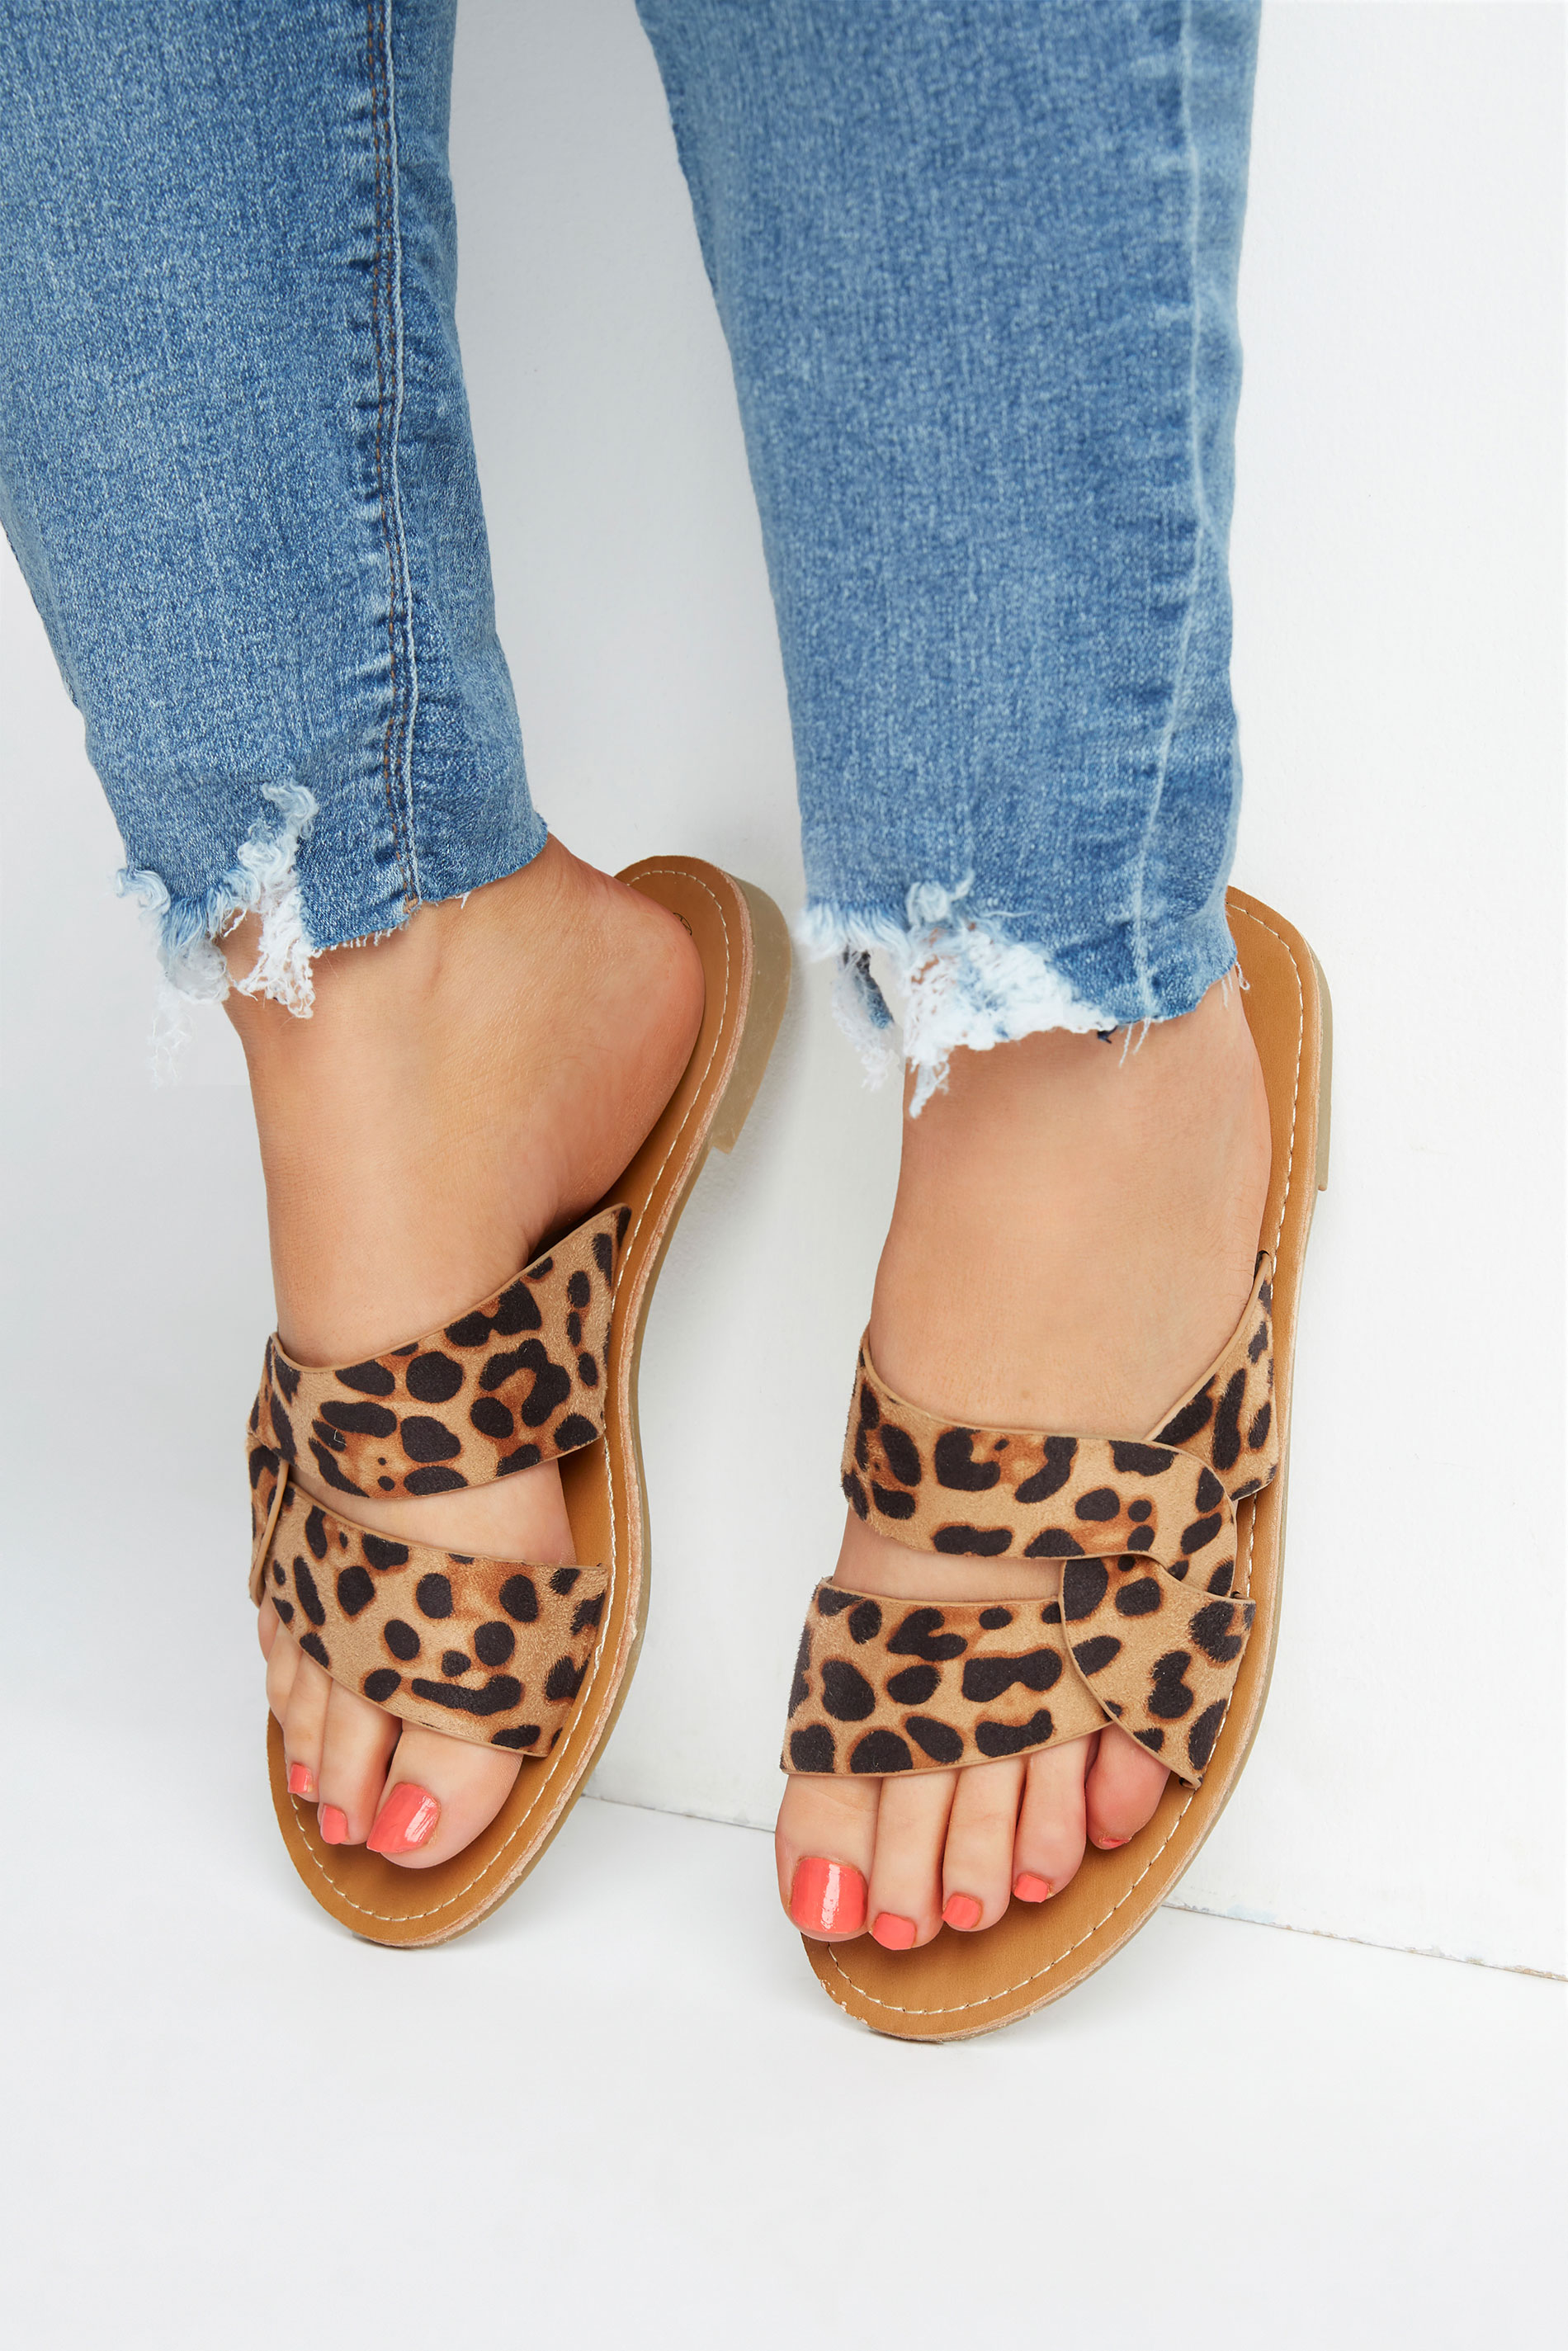 Yours Leopard Print Twist Strap Mules In Wide Fit